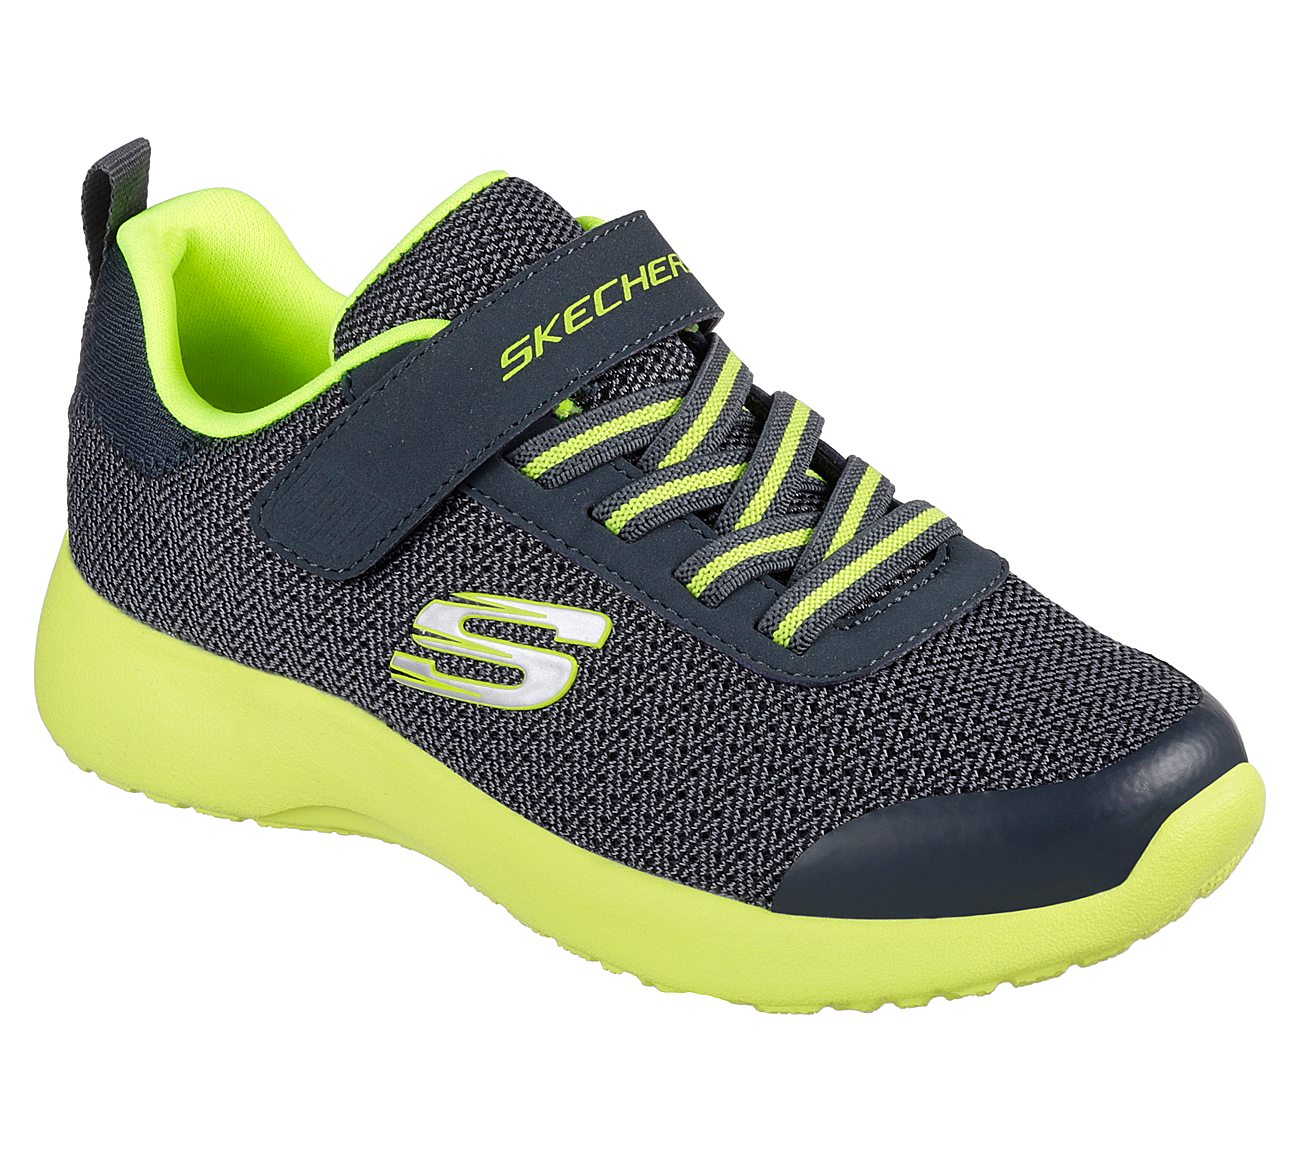 BOYS' SKECHERS DYNAMIGHT Ultra Torque Slate 97770LSLT